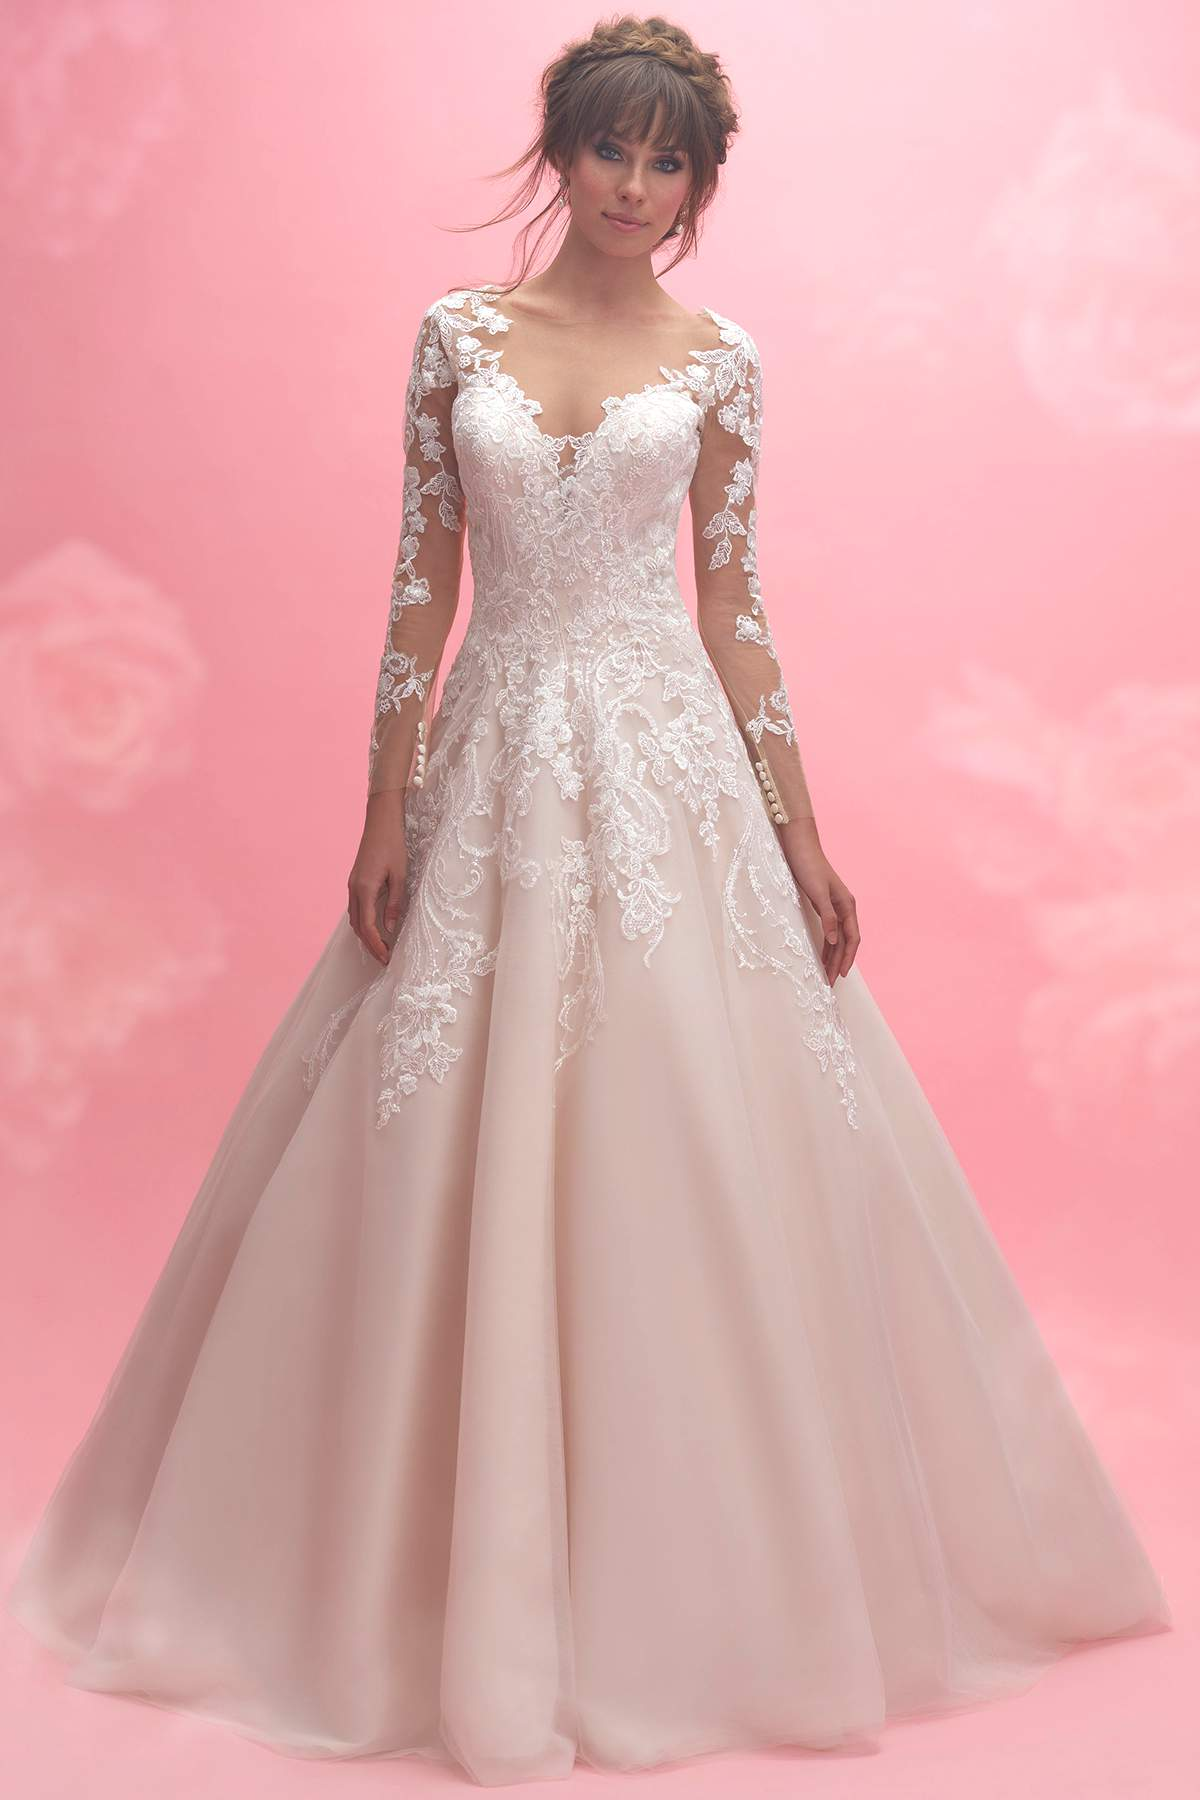 35873befdda Style 3059 by Allure Romance - Find Your Dream Dress